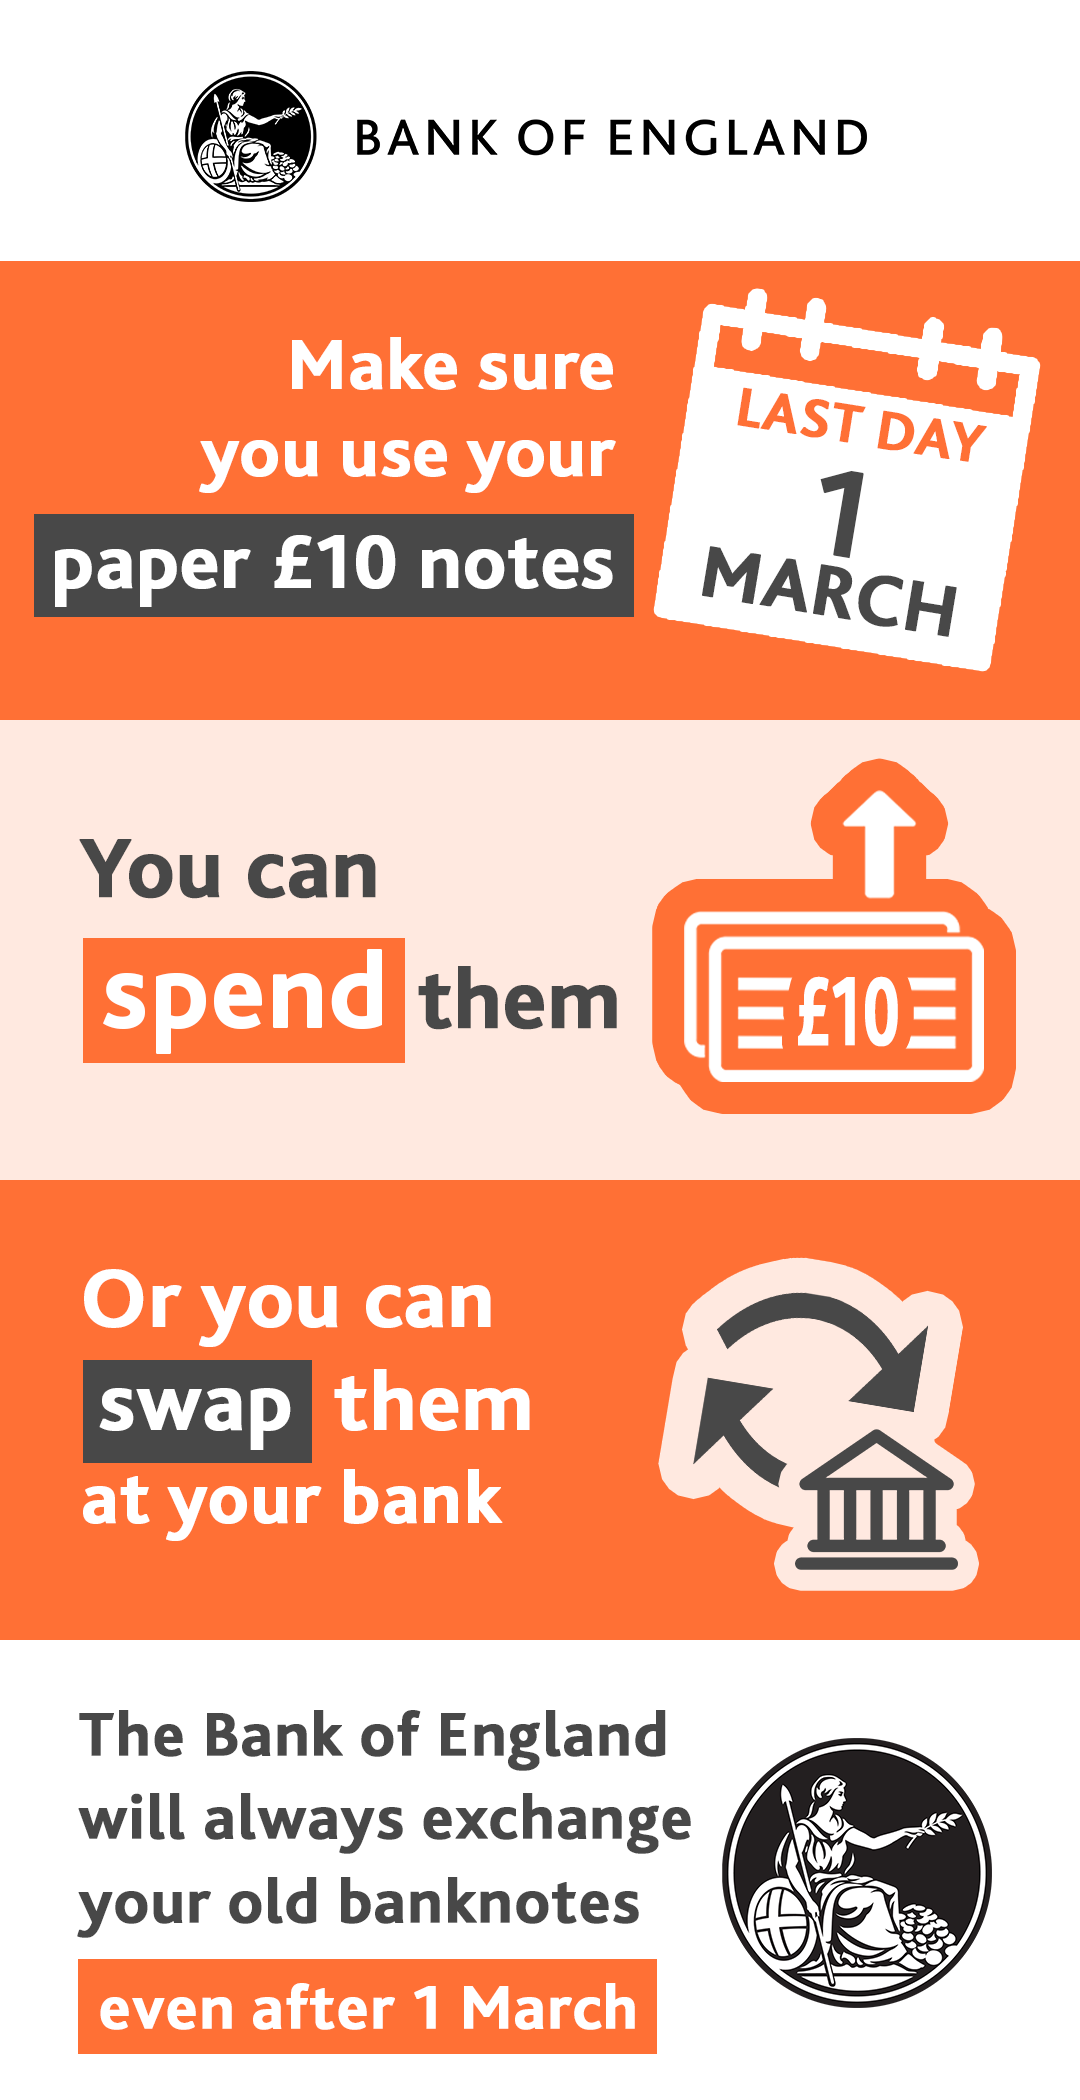 Make sure you use your paper £10 notes by 1 March 2018